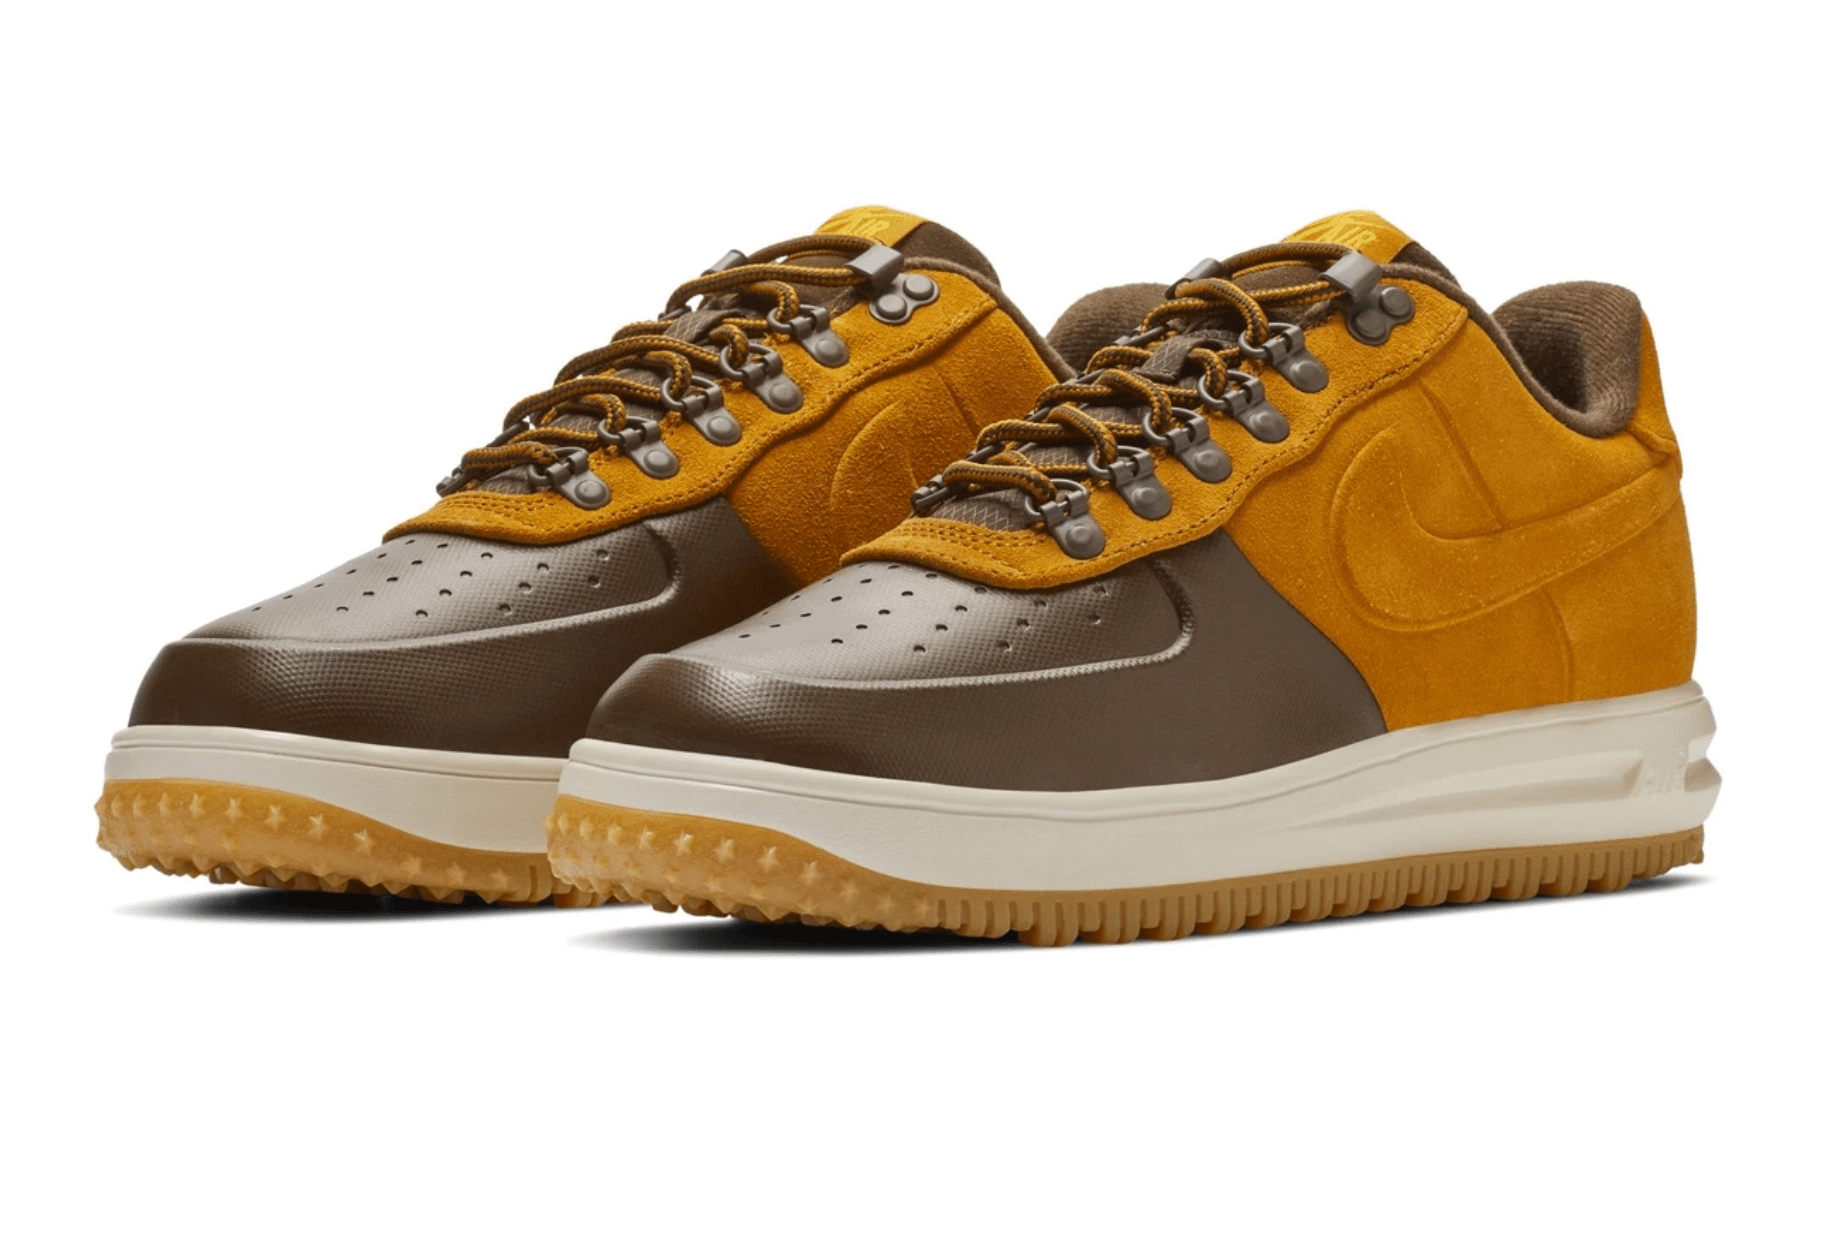 Nike Lunar Force 1 Duckboot Low 'Desert Ochre'